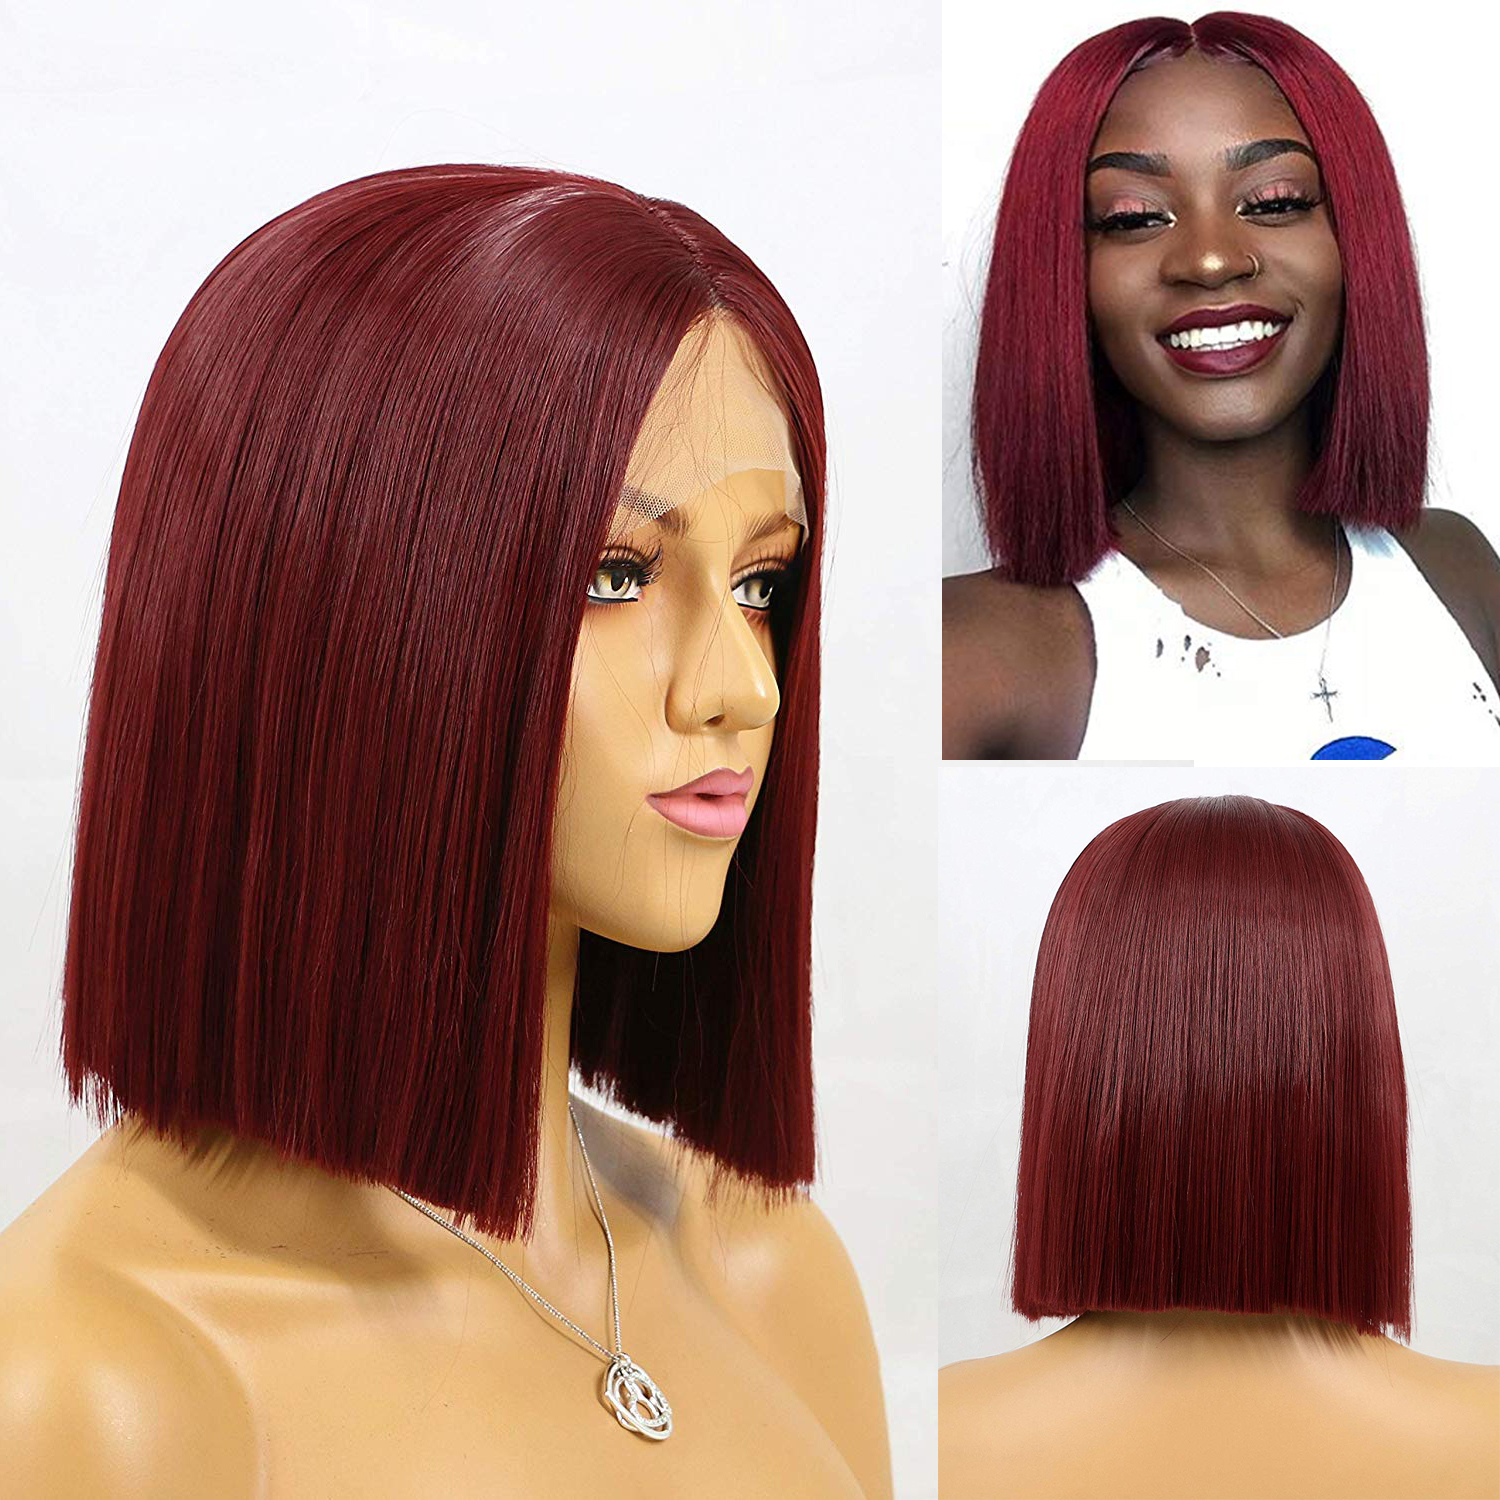 Aimeya Dark Red Short Hair Wigs Middle Part Synthetic Straight Bob Lace Front Wigs For Women Heat Resistant Fiber Hair Wigs Synthetic None Lace Wigs Aliexpress